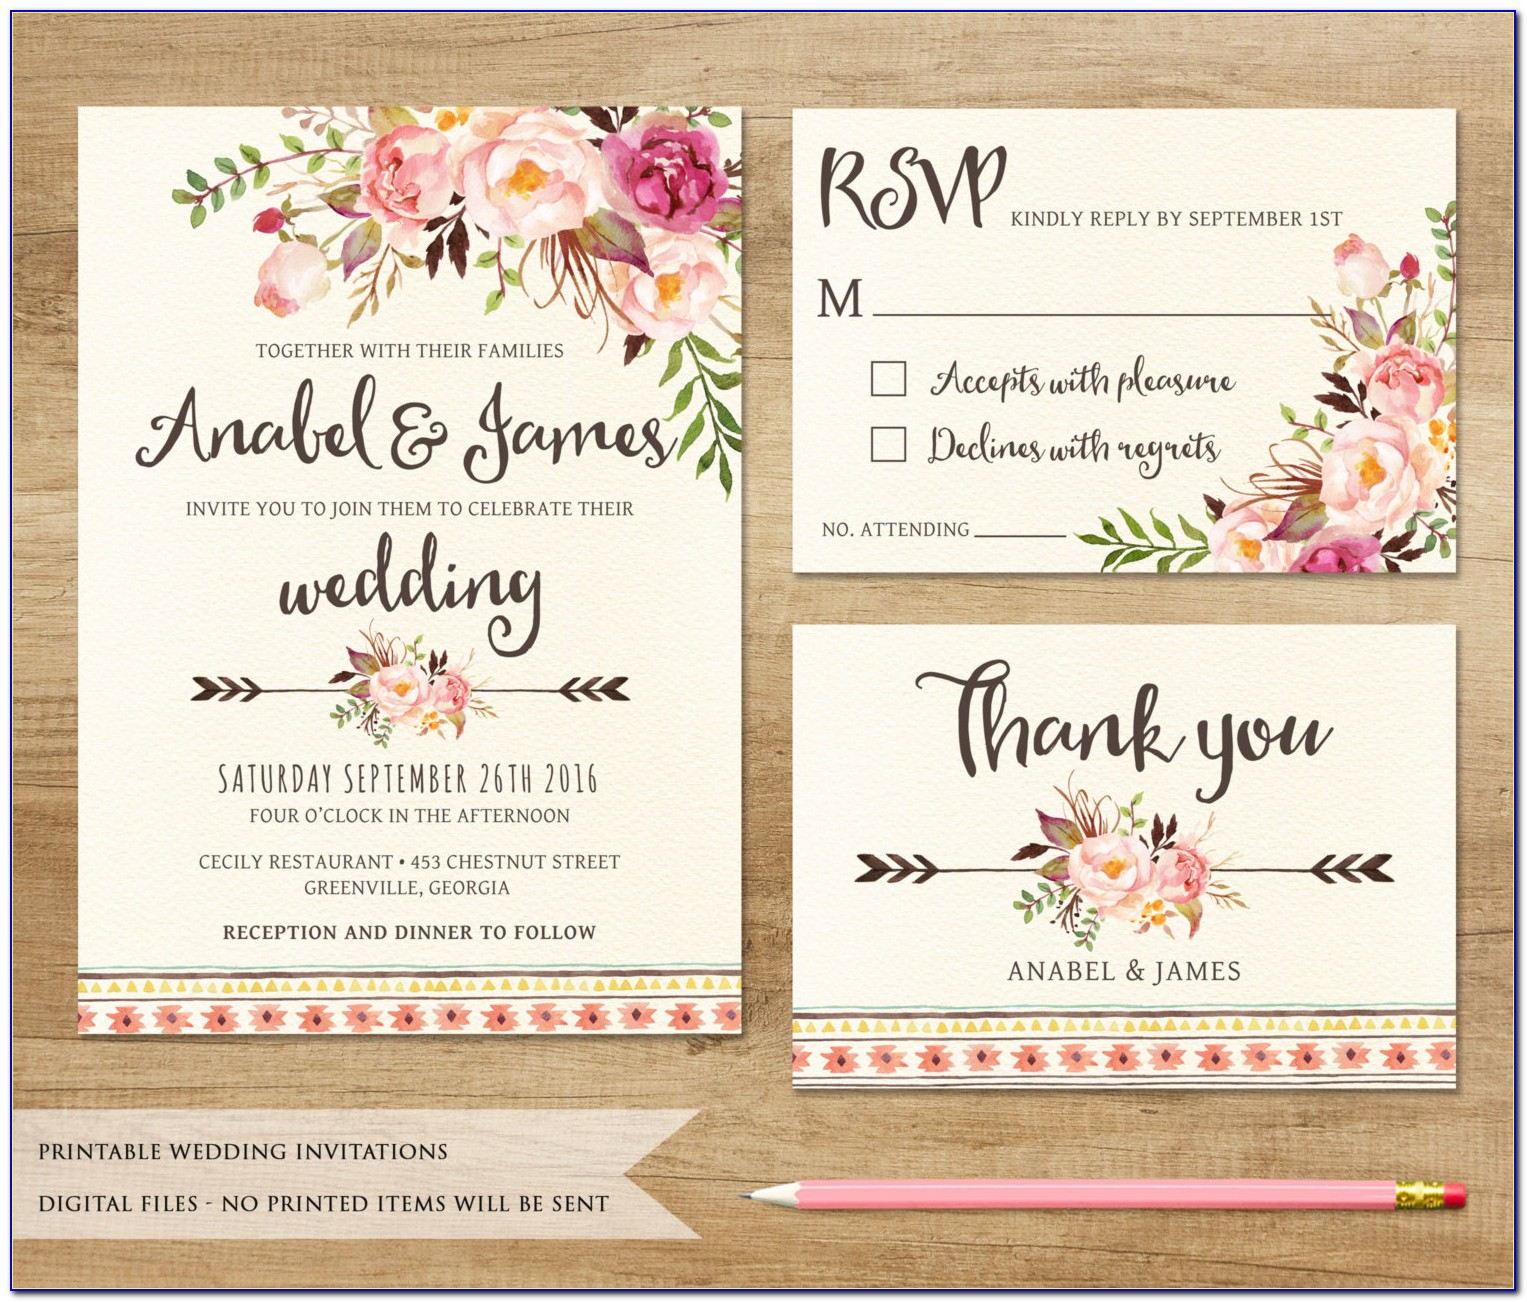 Free Wedding Reception Invitation Templates For Word